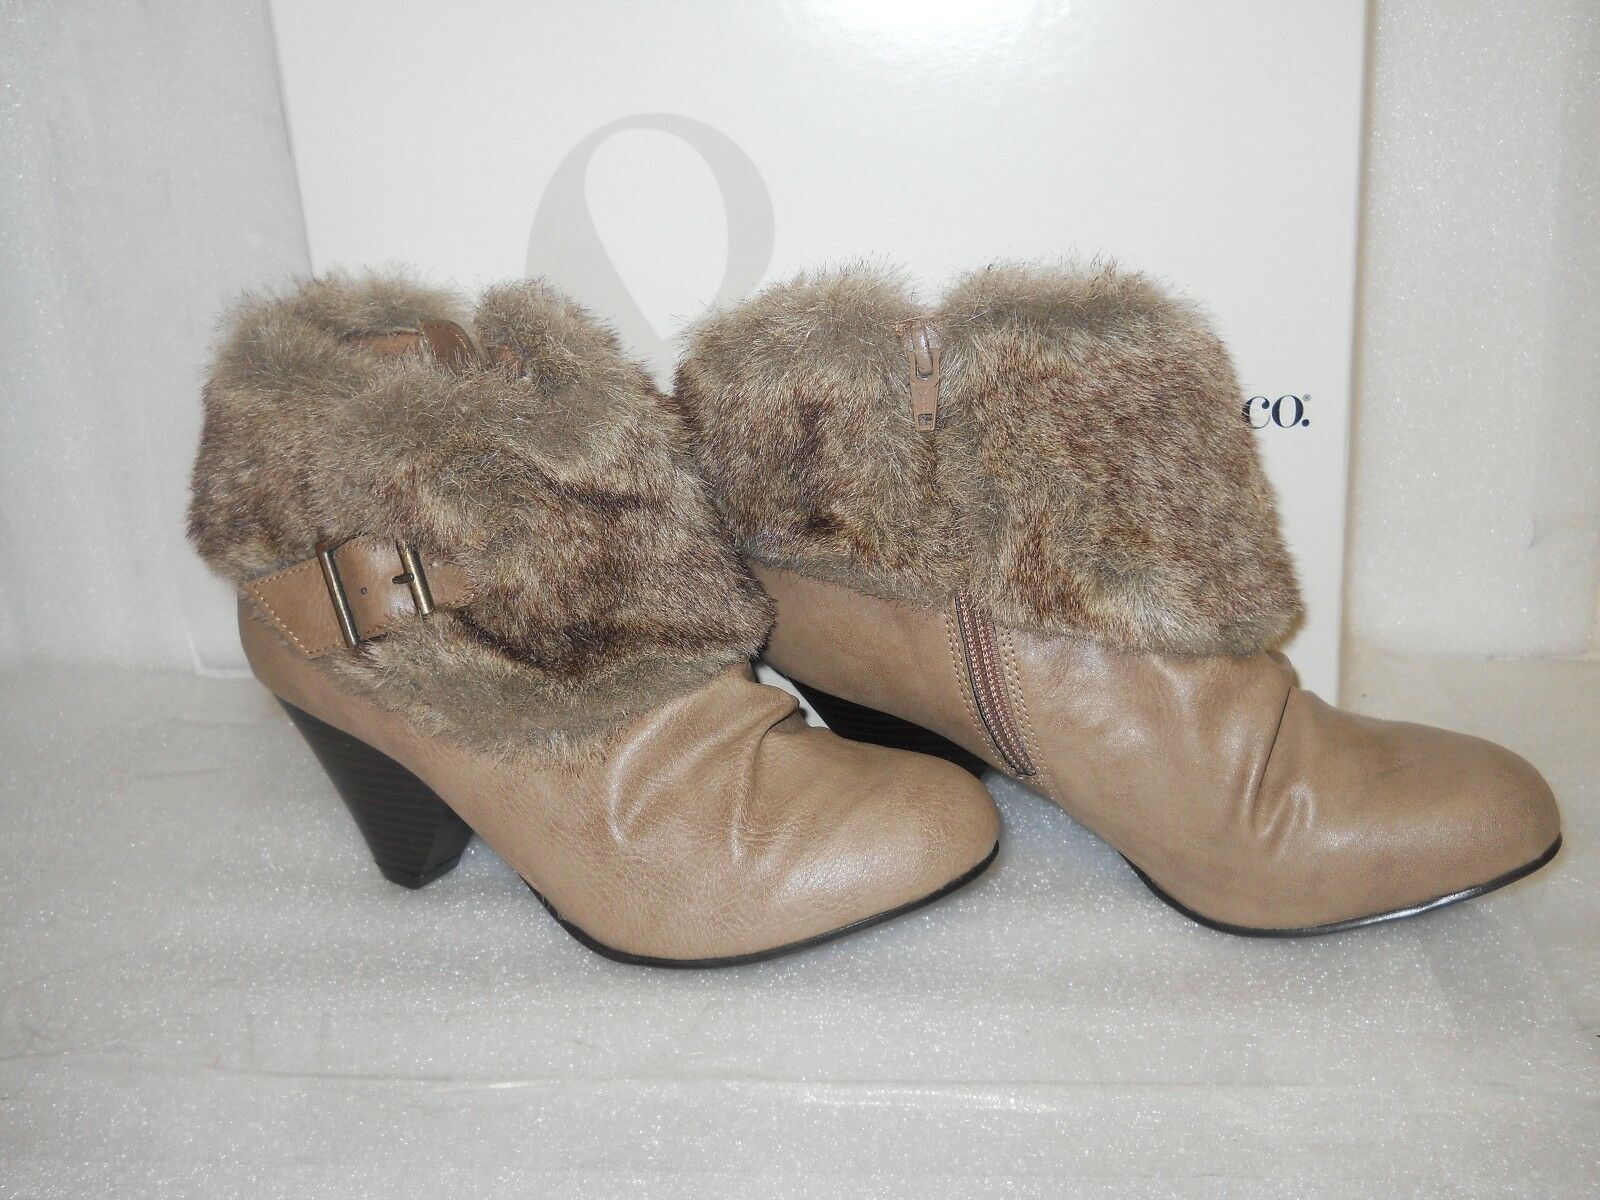 acquista online Style & & & Co New donna Sookie Natural Taupe stivali 5.5 M scarpe NWB  negozio outlet